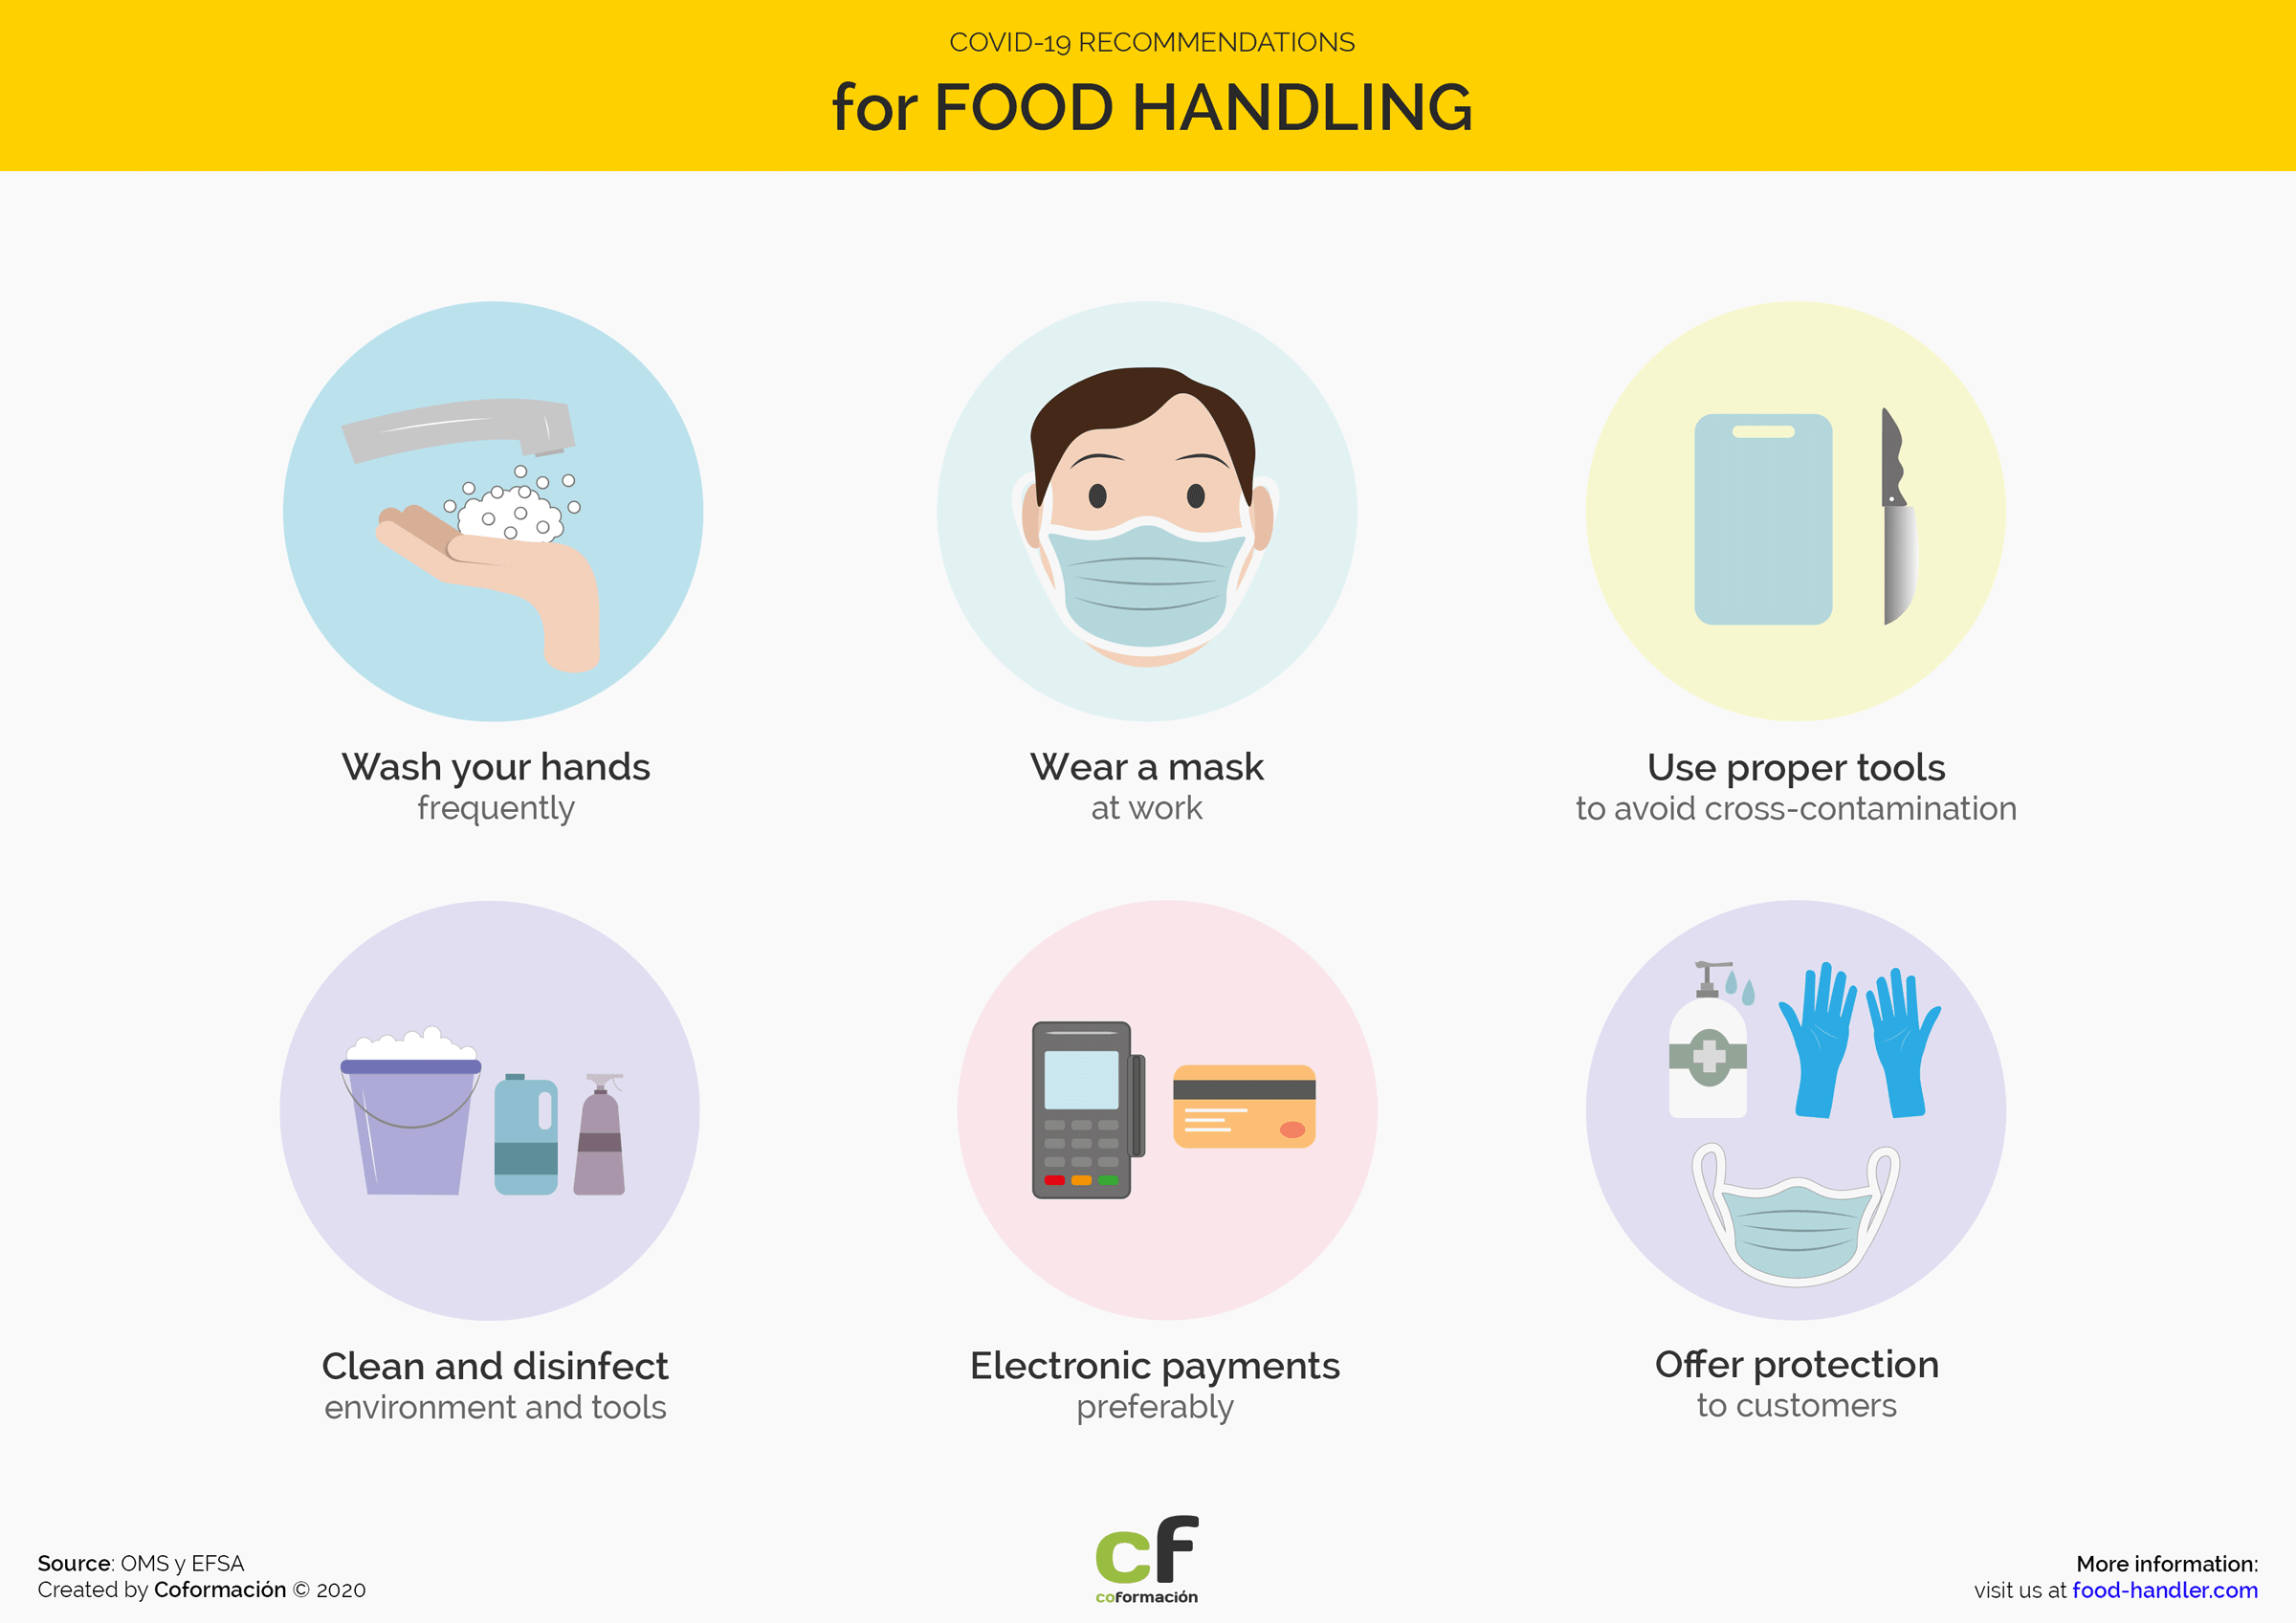 Covid-19 recommendations for Food Handlers